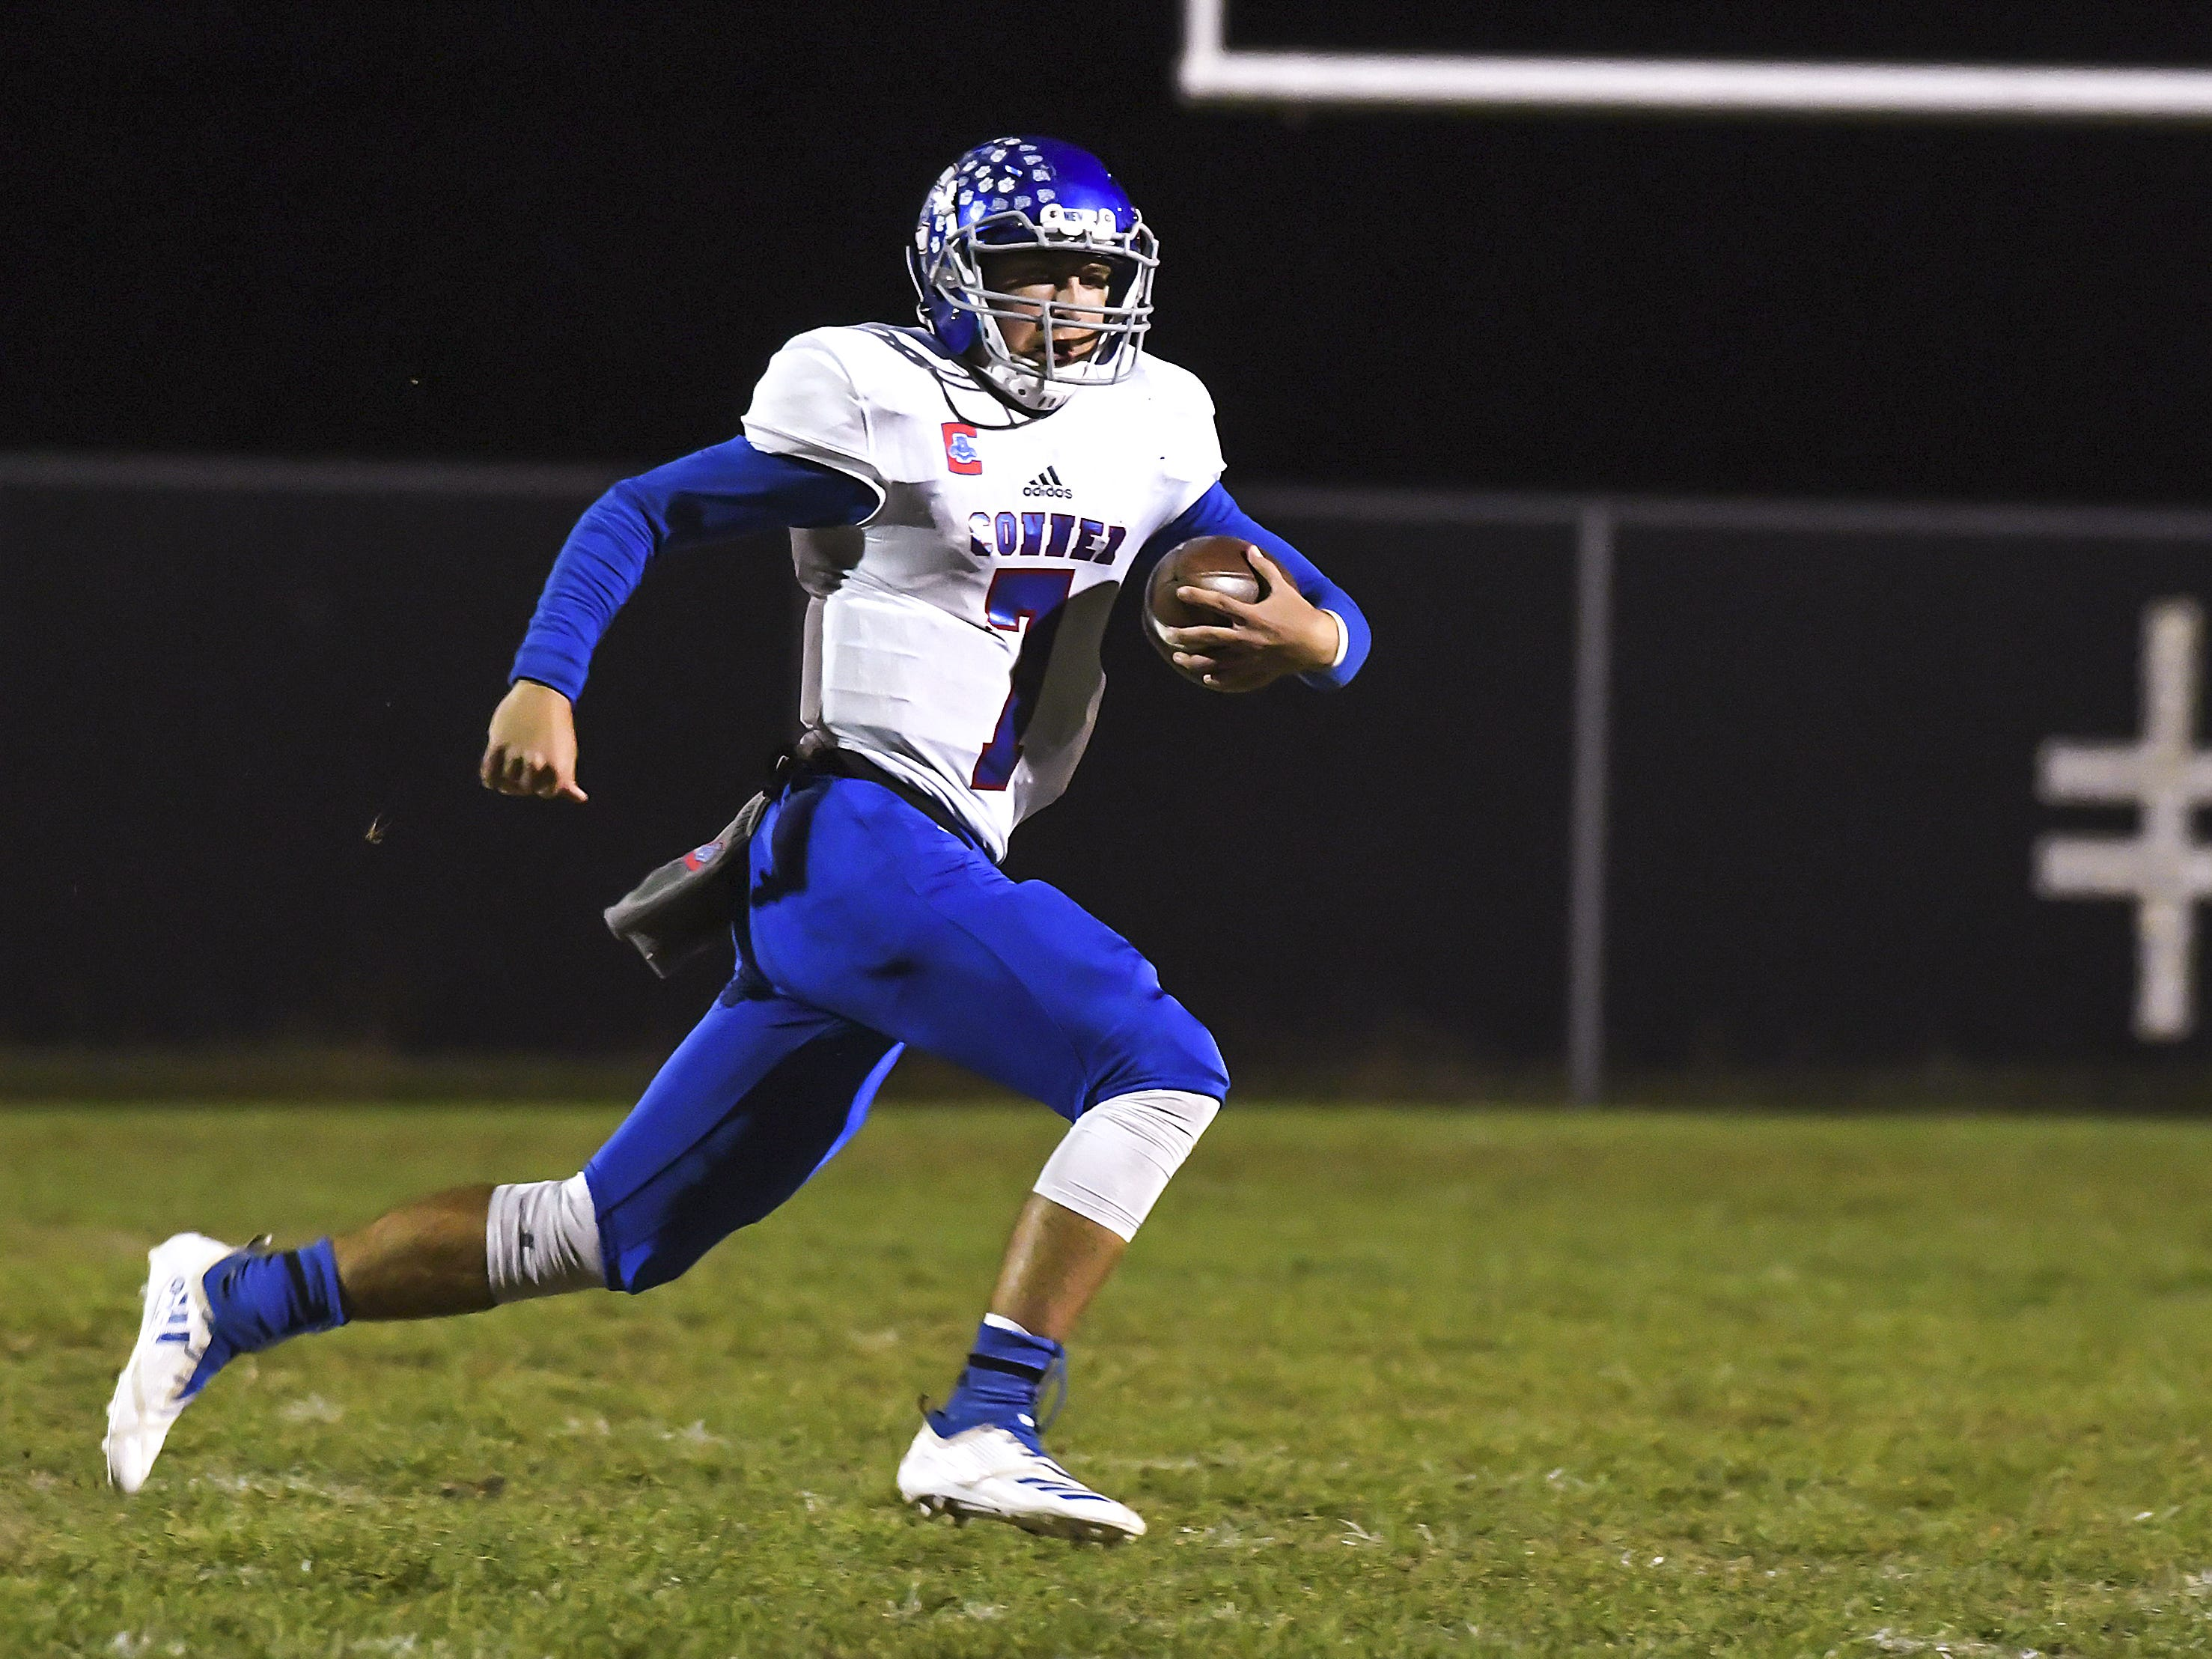 Jared Hicks of Conner runs the ball against Cooper in the Skyline Chili Crosstown Showdown at Cooper High School, Union, KY, Friday Oct. 19, 2018